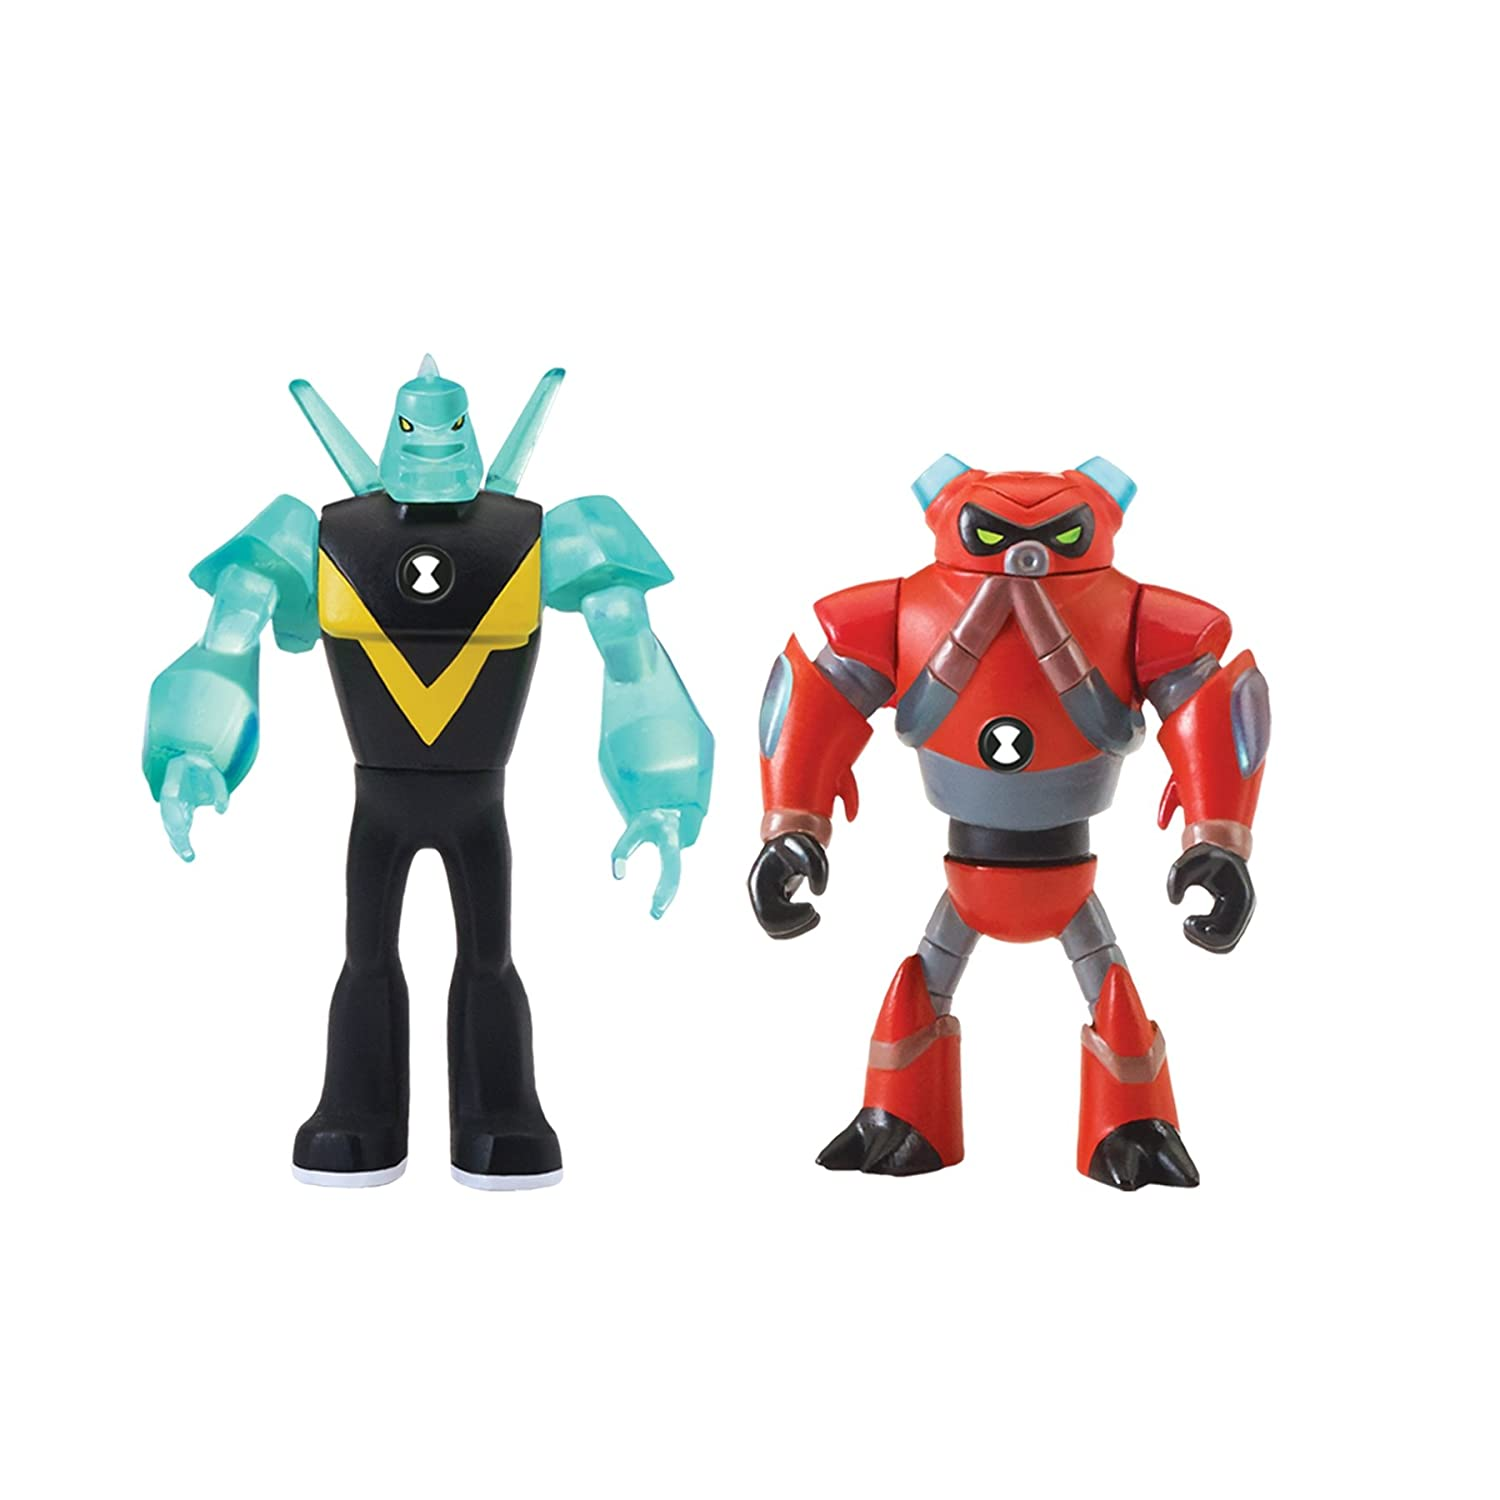 Ben 10 Alien Creation Figures 2 Pack (Diamondhead, Overflow), Multi Playmates Toys 76781